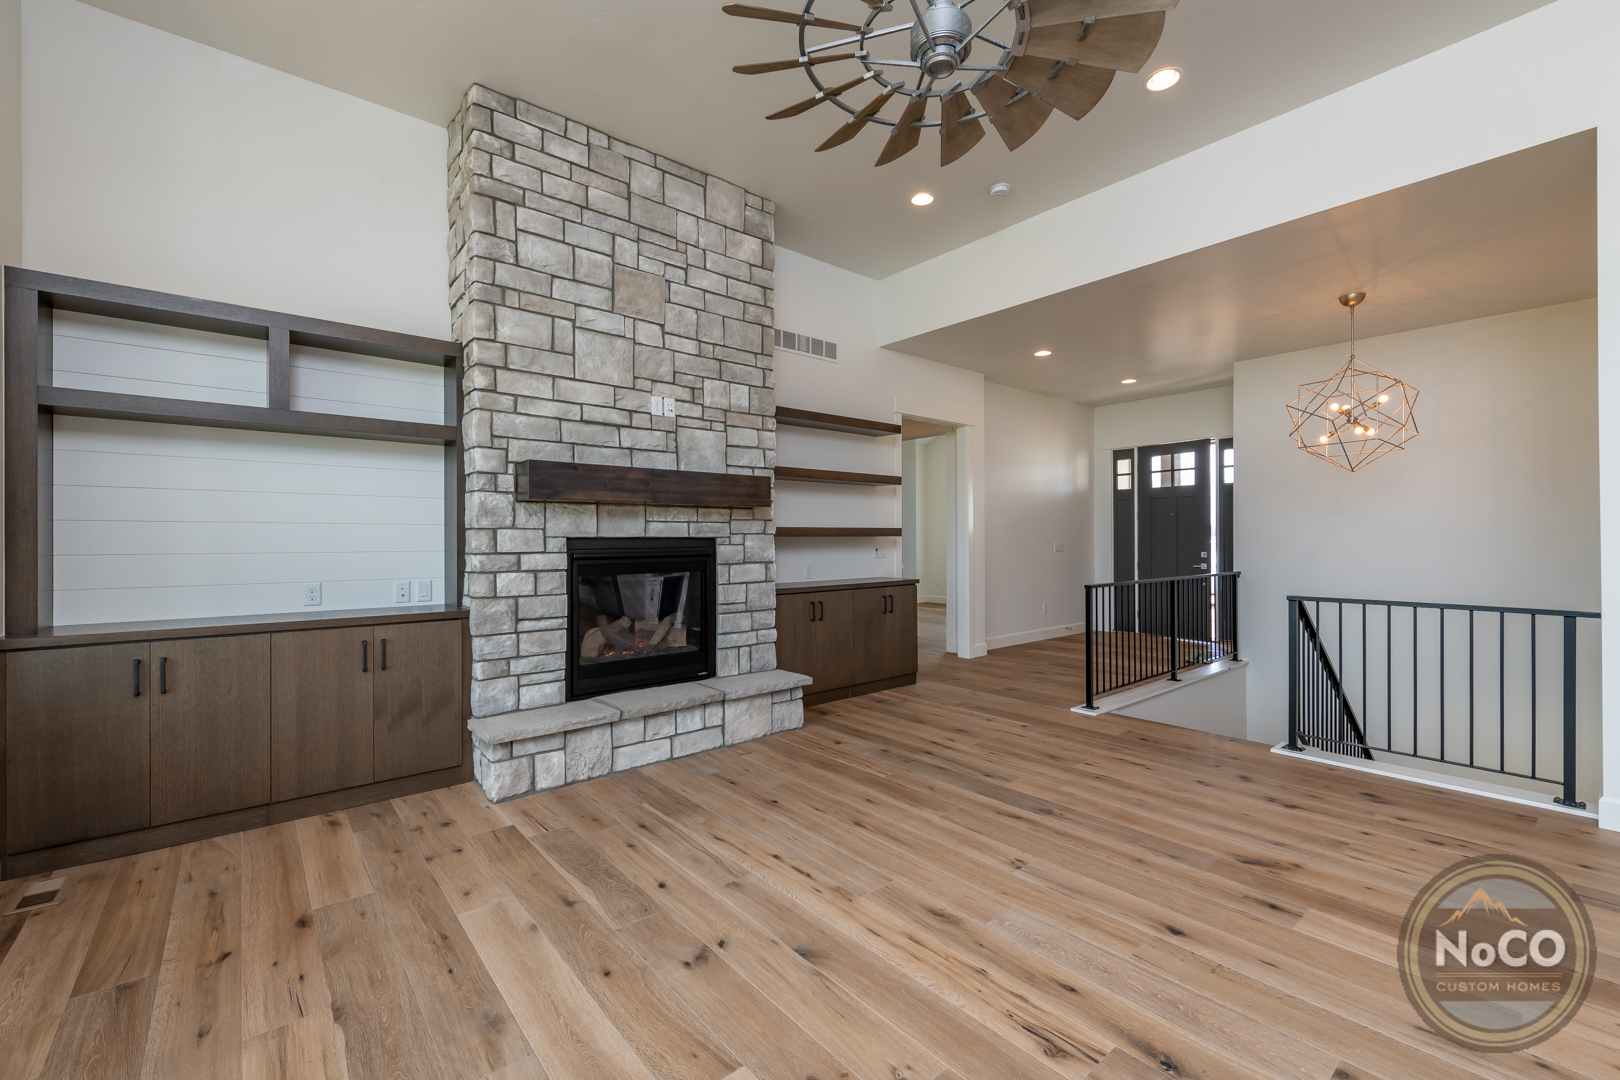 colorado custom home living room fireplace